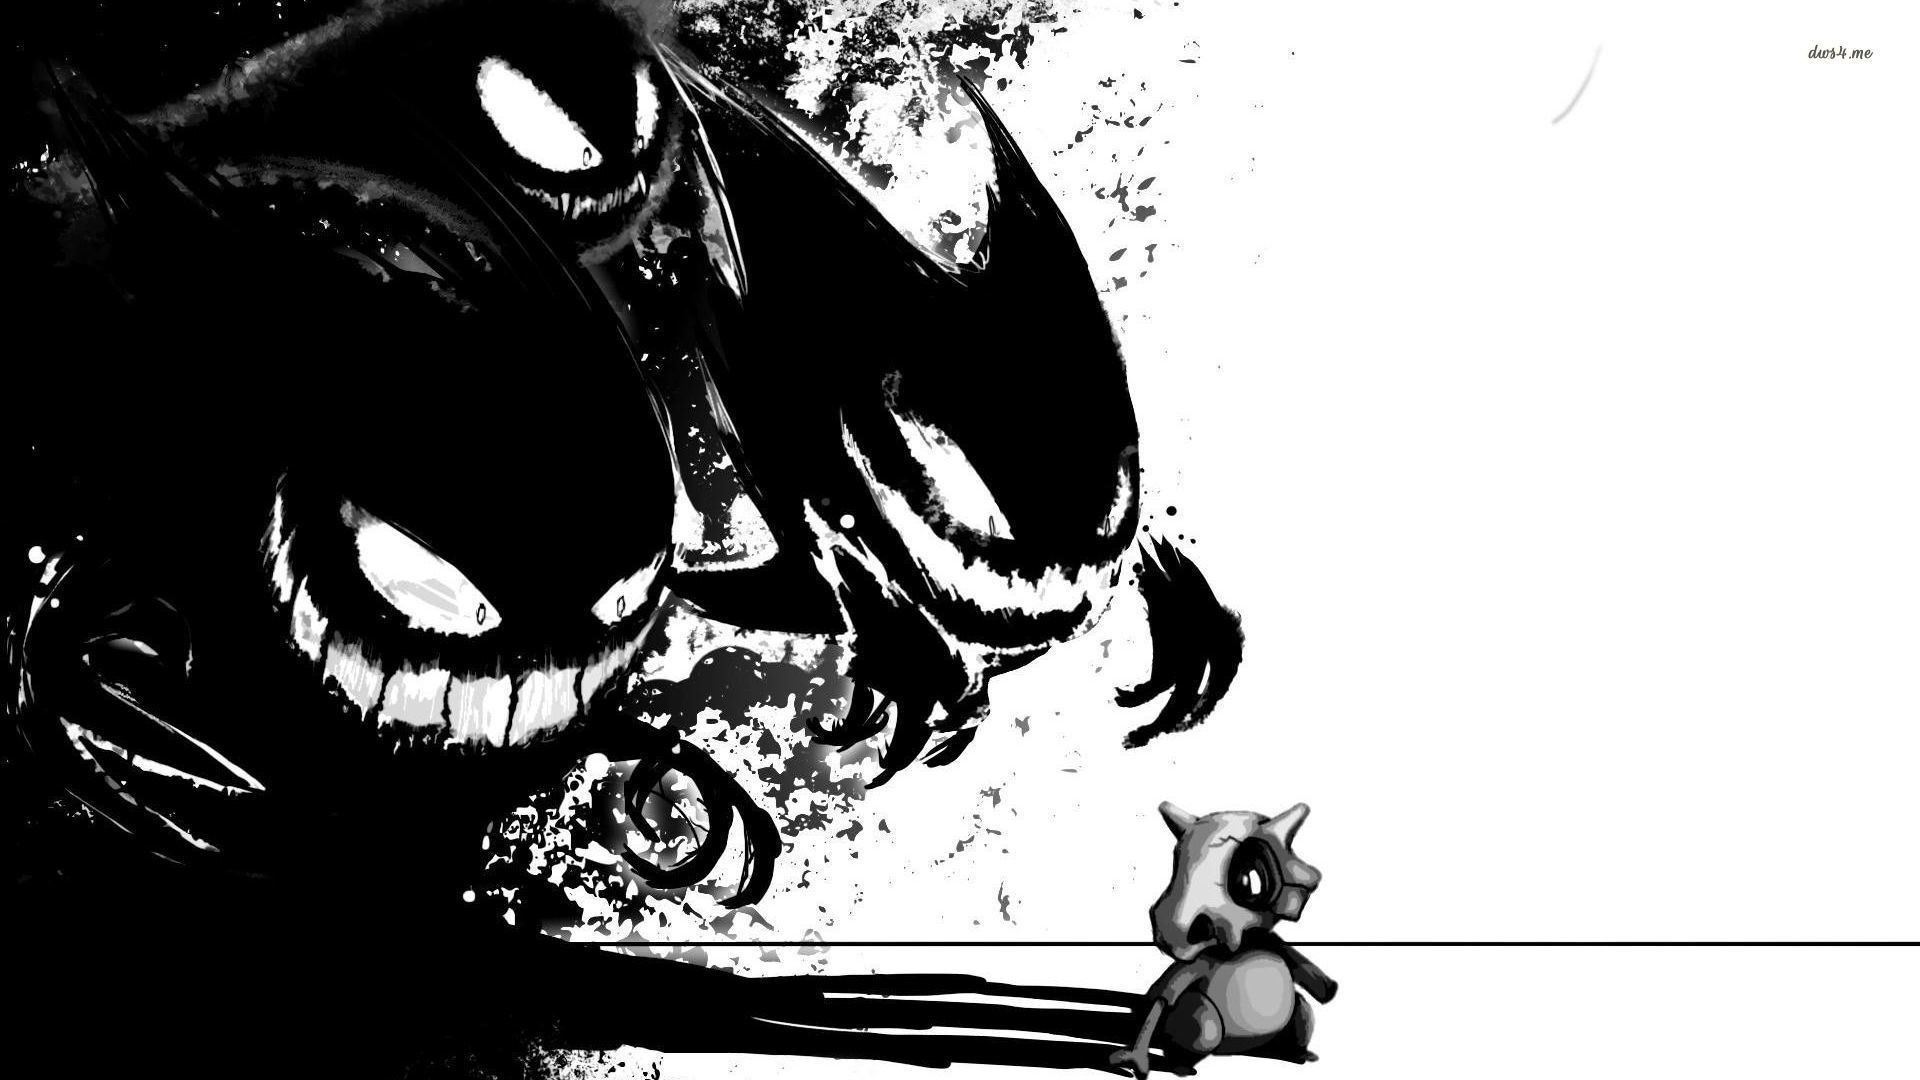 1920x1080 Dark Gengar and Cubone in Pokemon wallpaper - Game wallpapers - #43918